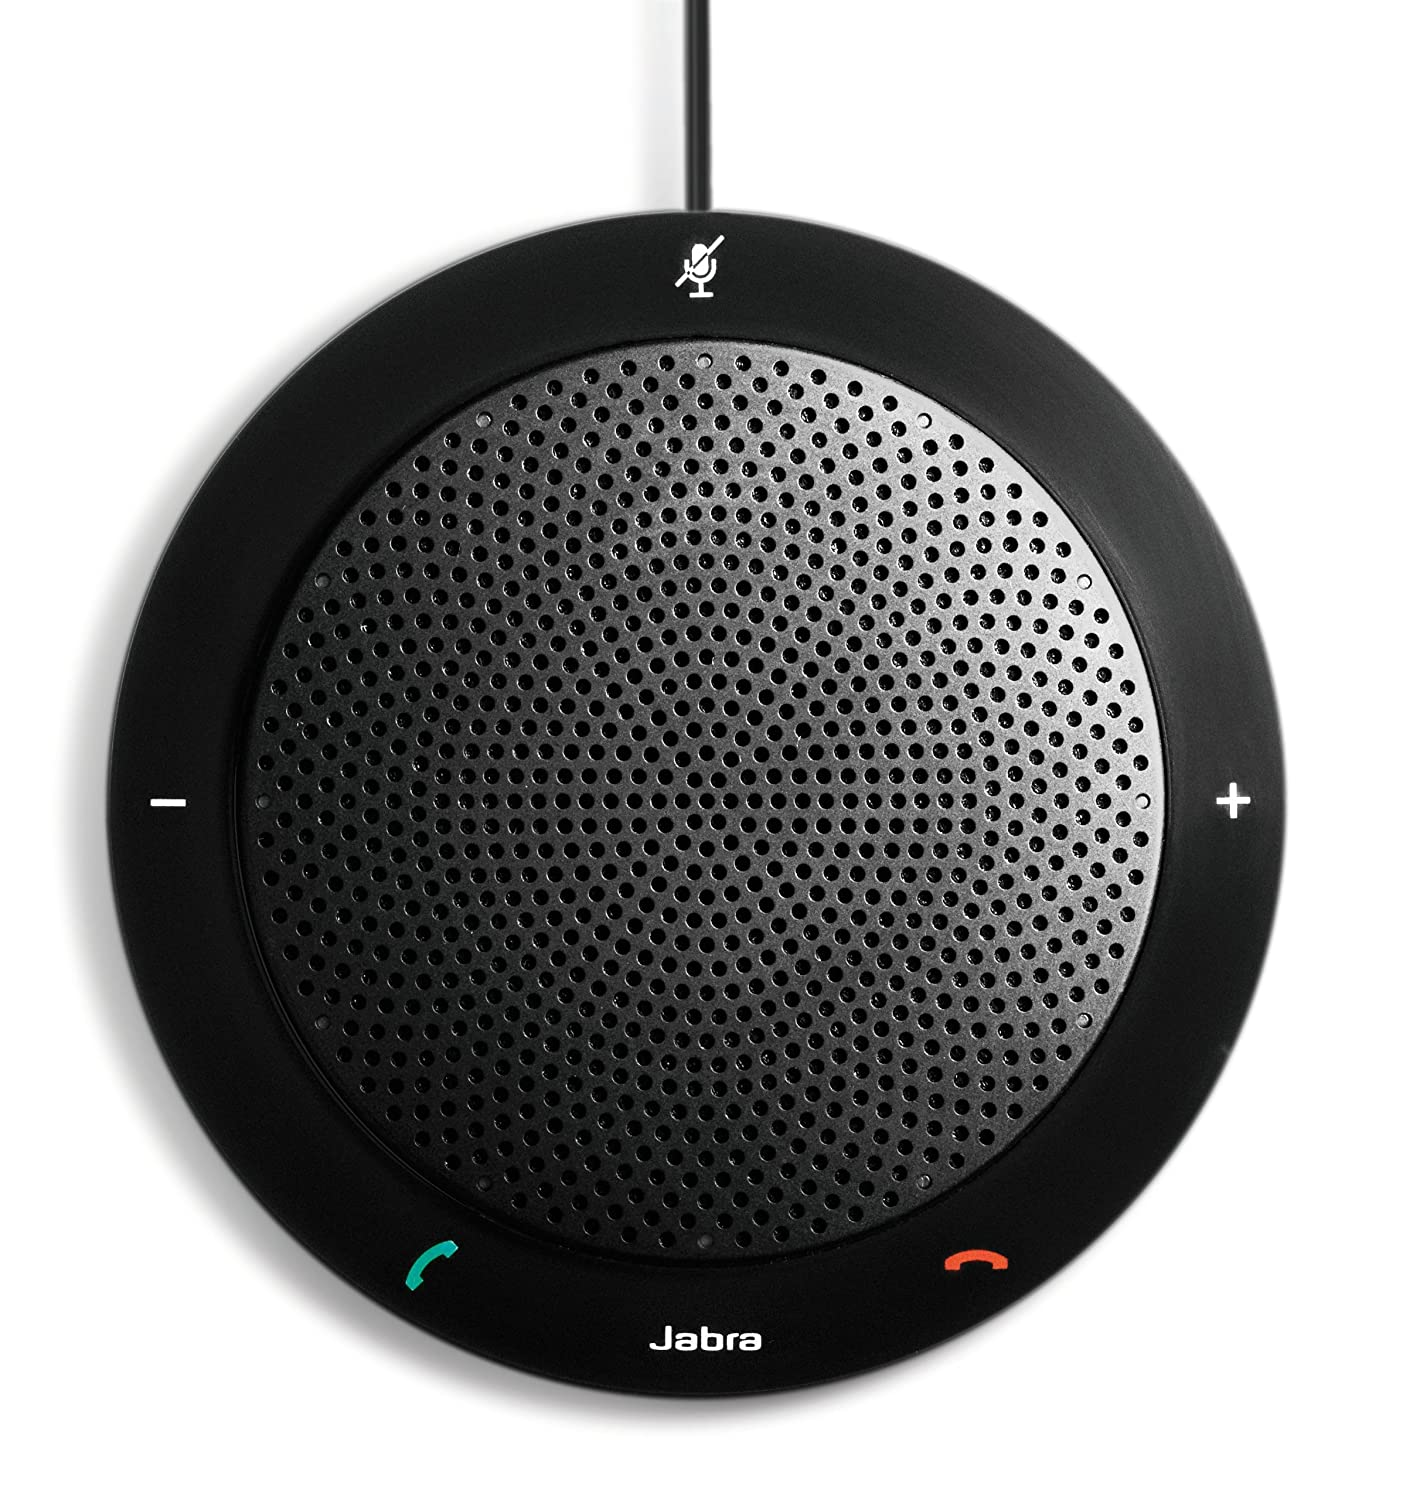 Jabra Speak PHS001U 410 USB Speakerphone for Skype and other VoIP calls (U.S. Retail Packaging) 100-43000000-02